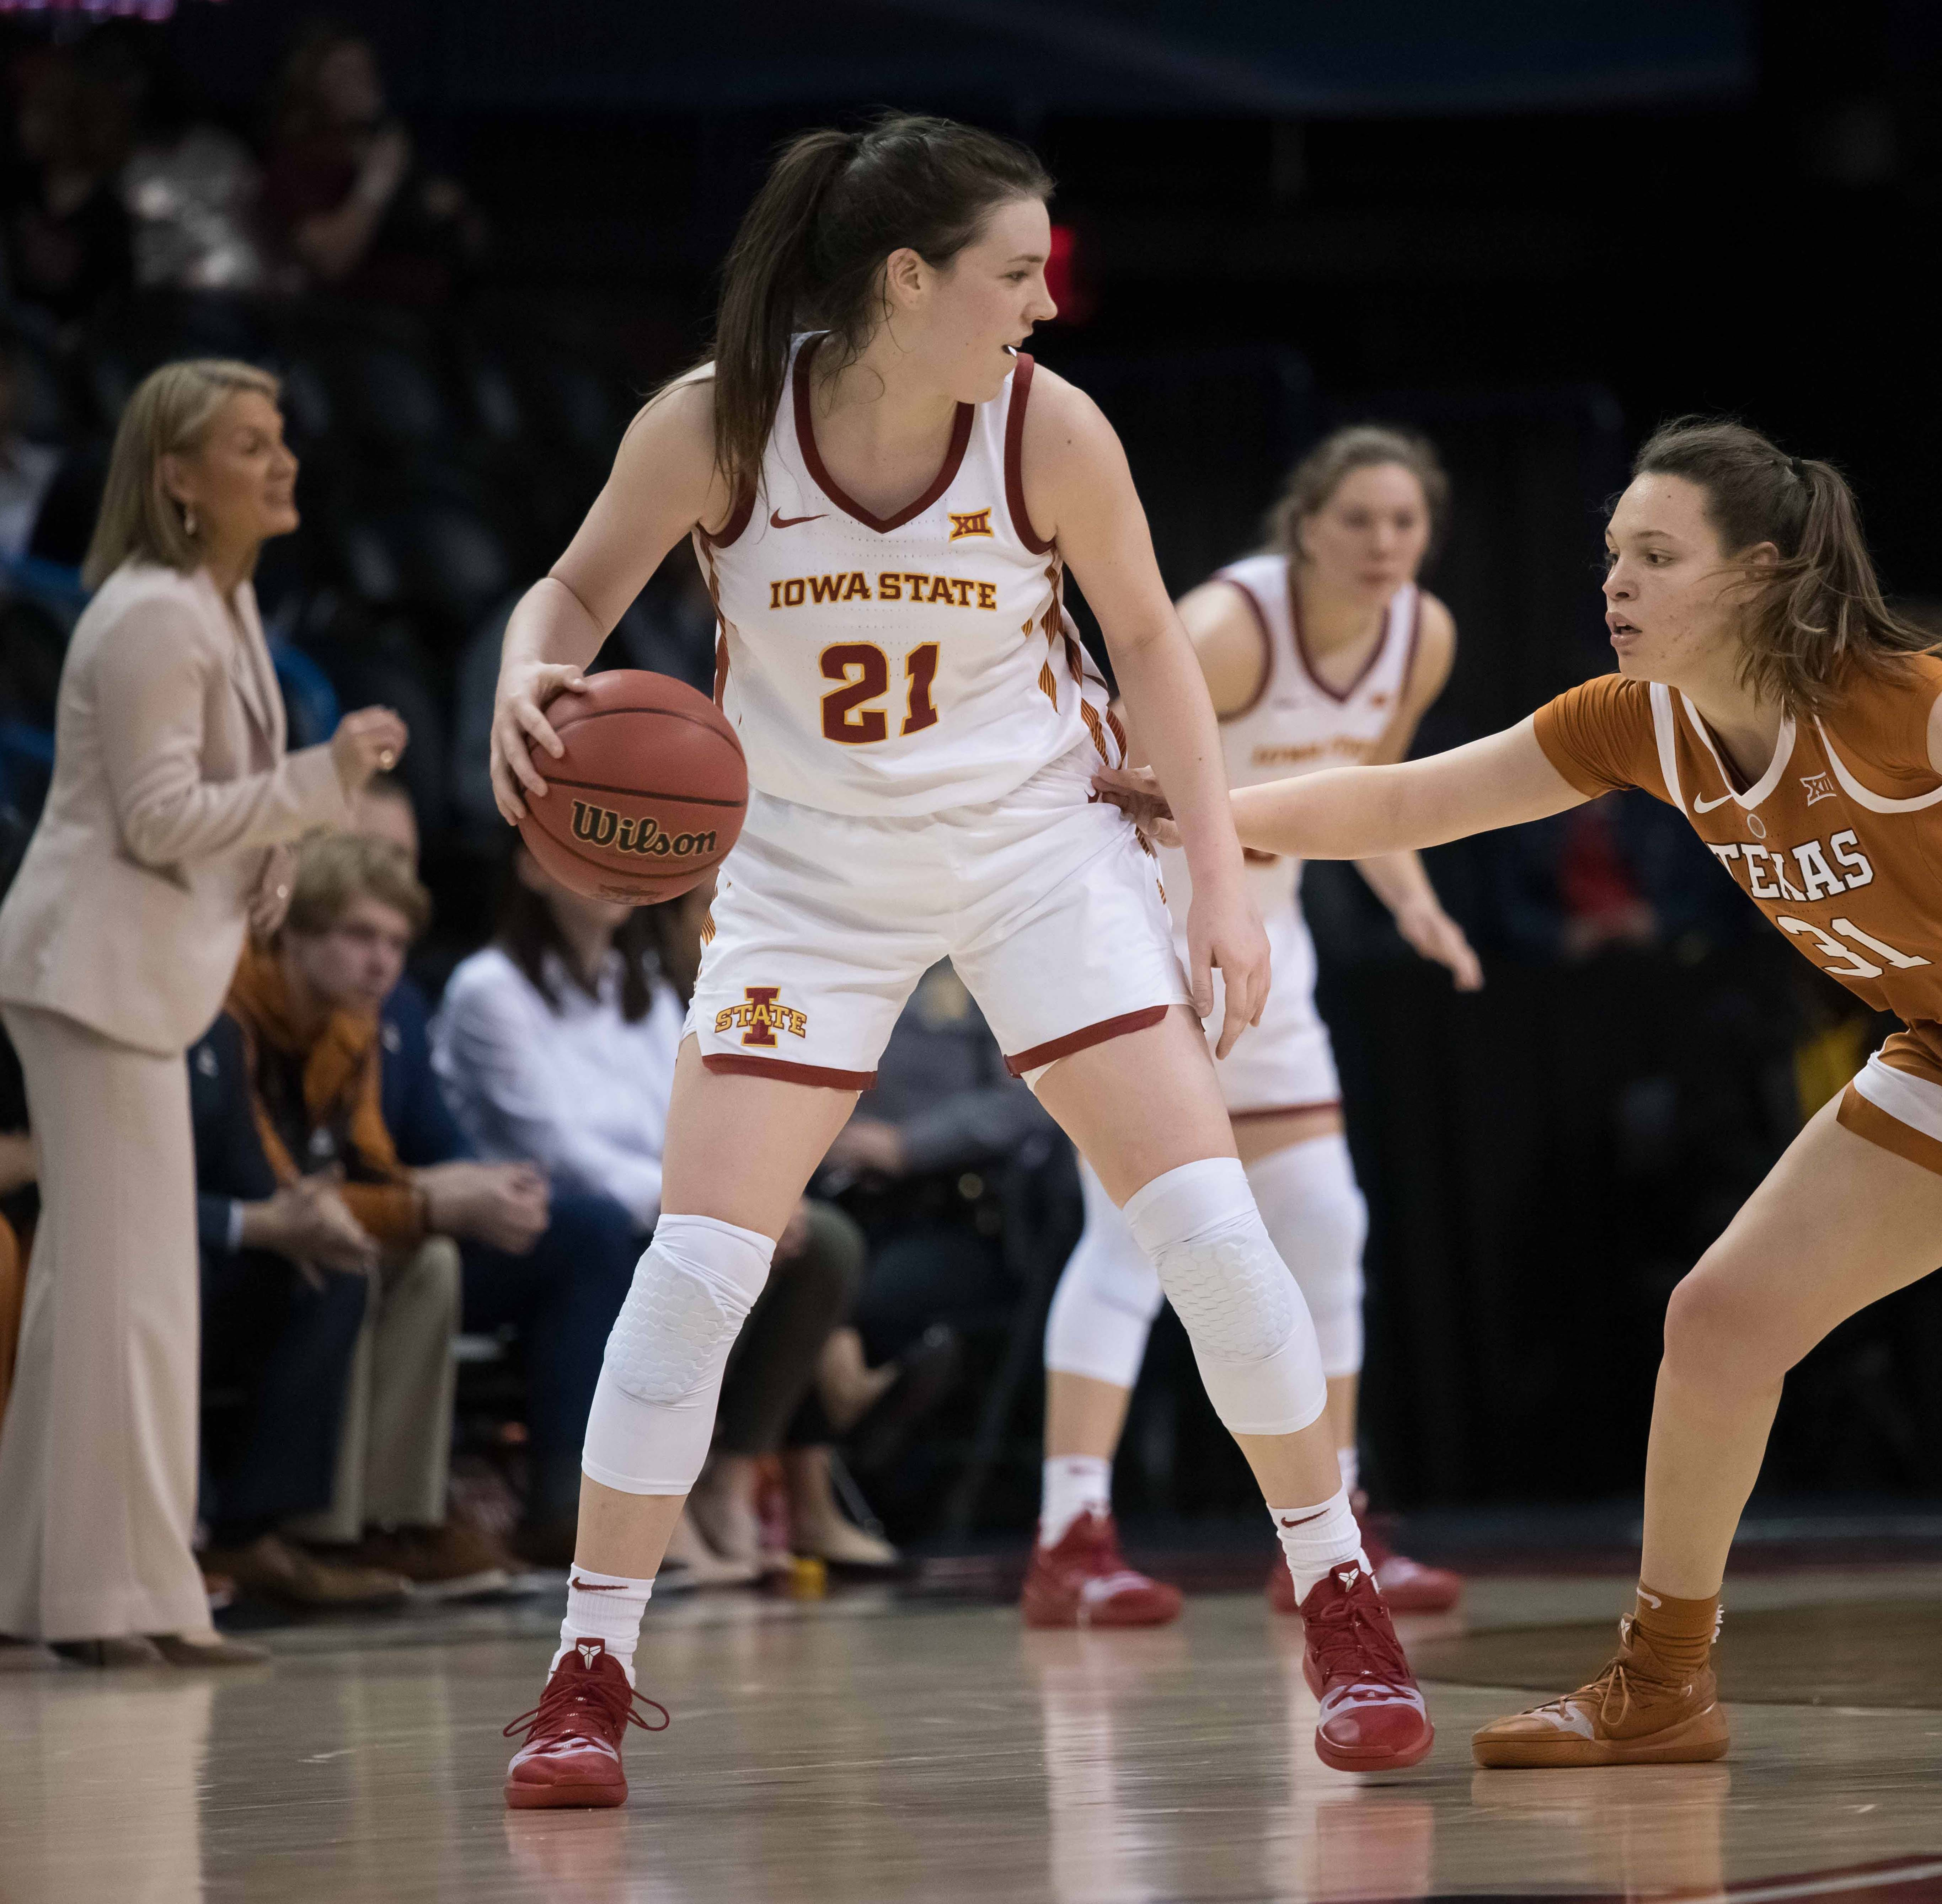 Iowa State women advance to Big 12 title game